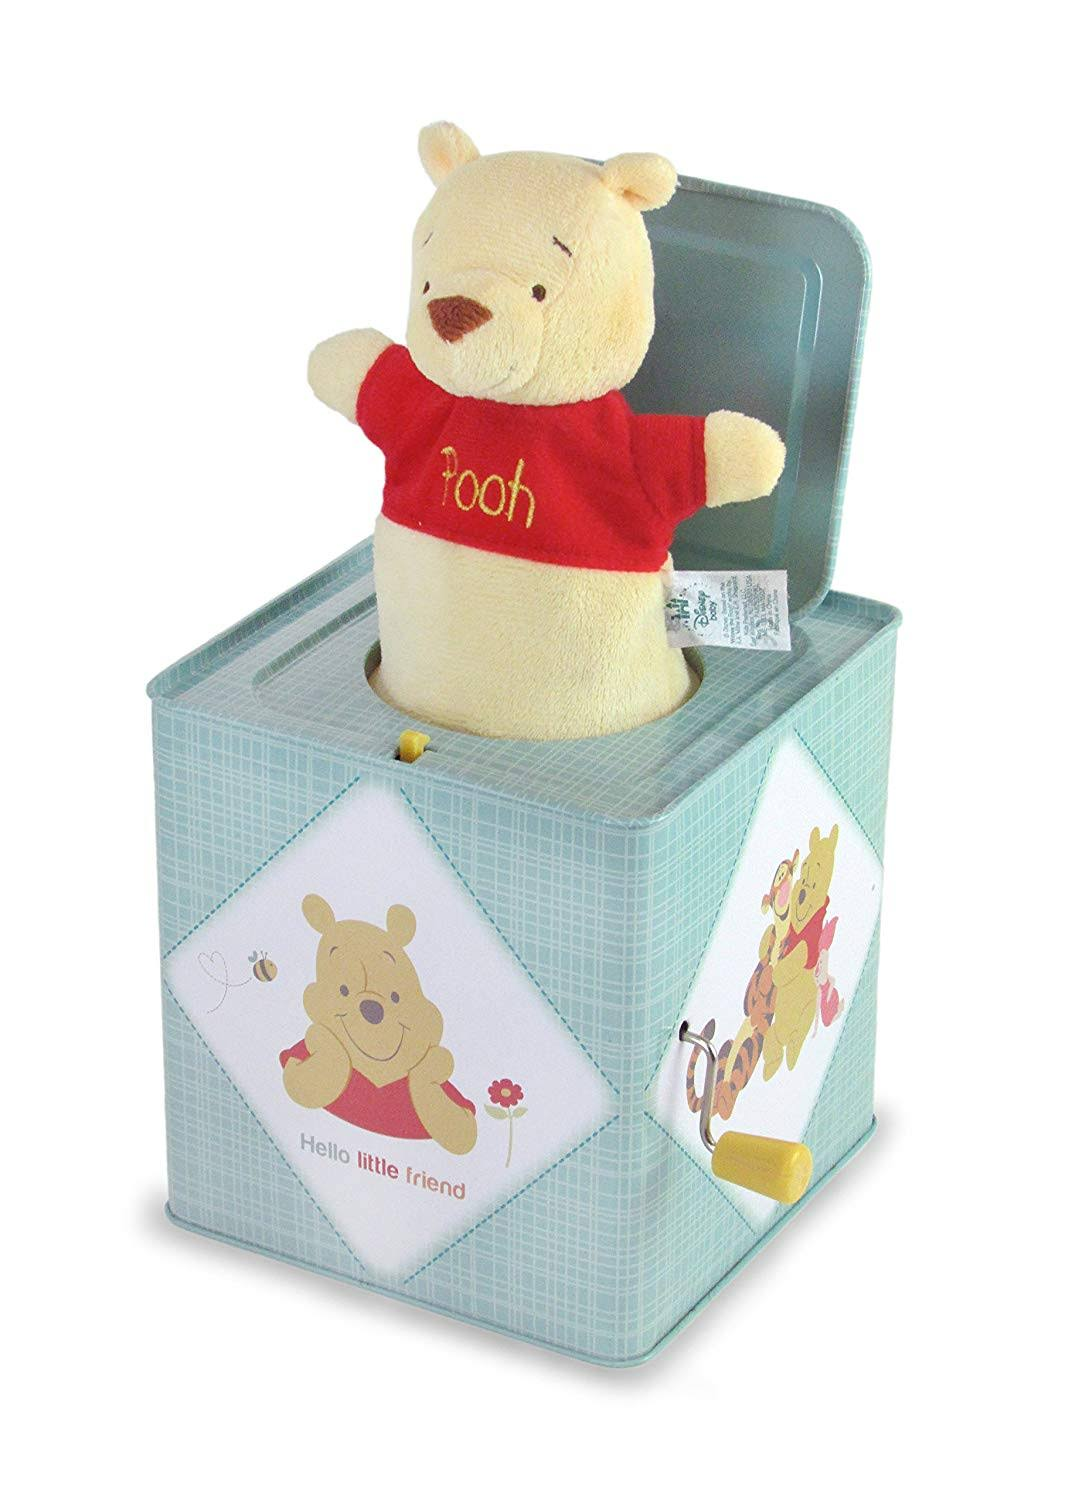 Kids Preferred Jack-in-the-Box Instrument - Winnie the Pooh